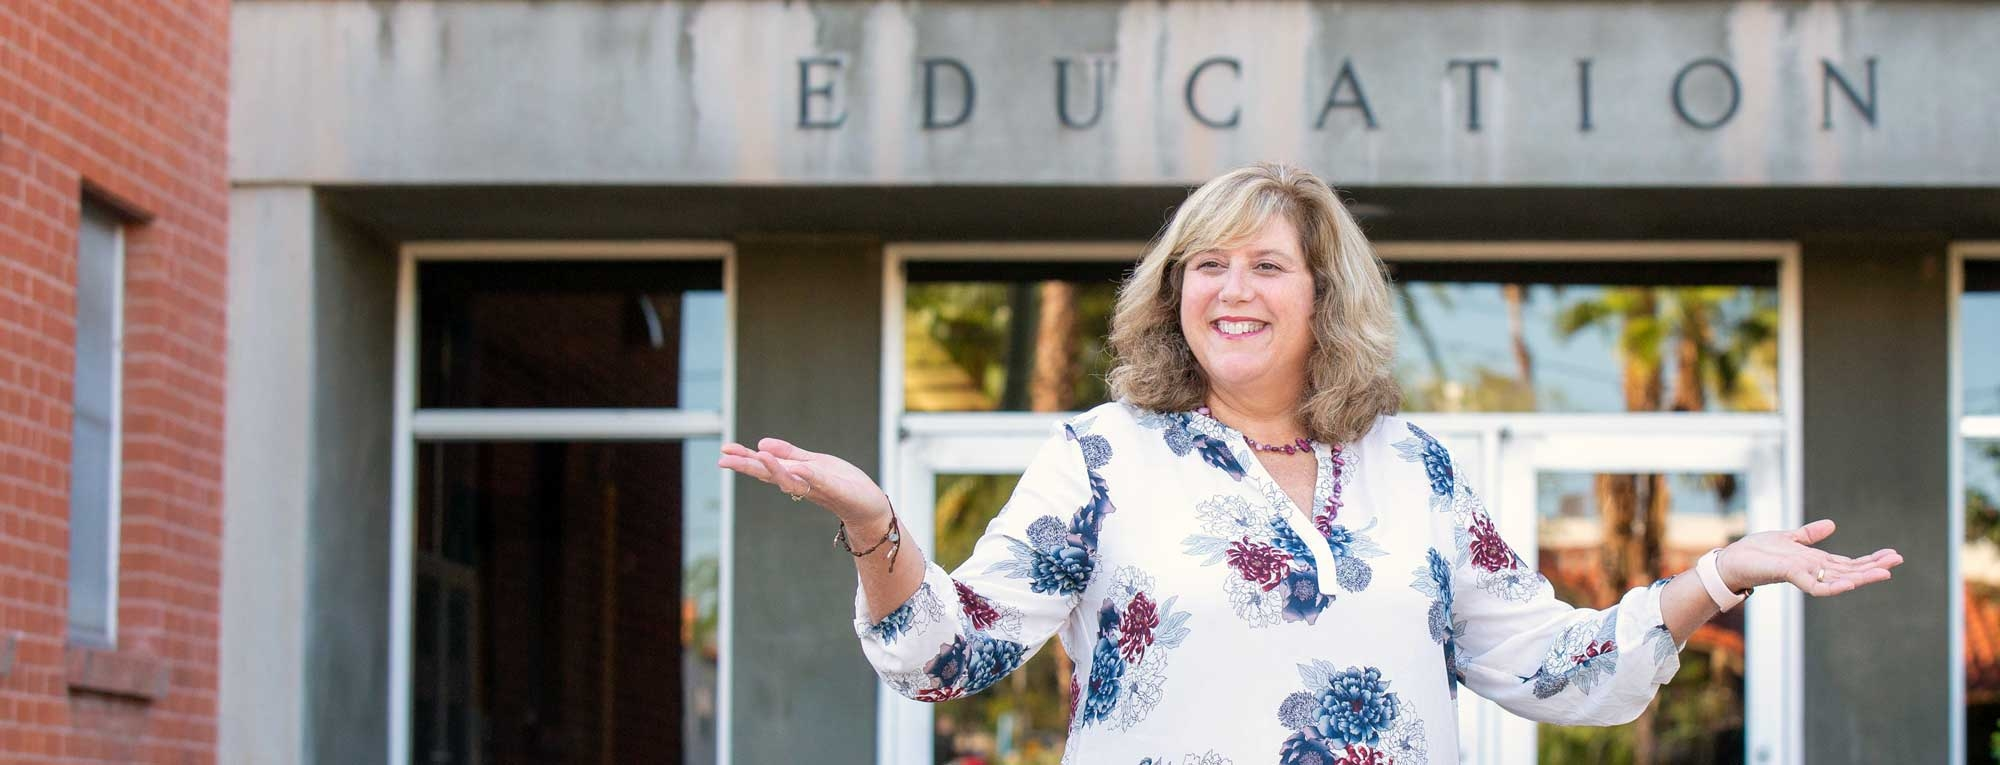 Melody Buckner, Associate Vice Provost of Digital Learning Initiatives and Online Education, stands in front of the education building